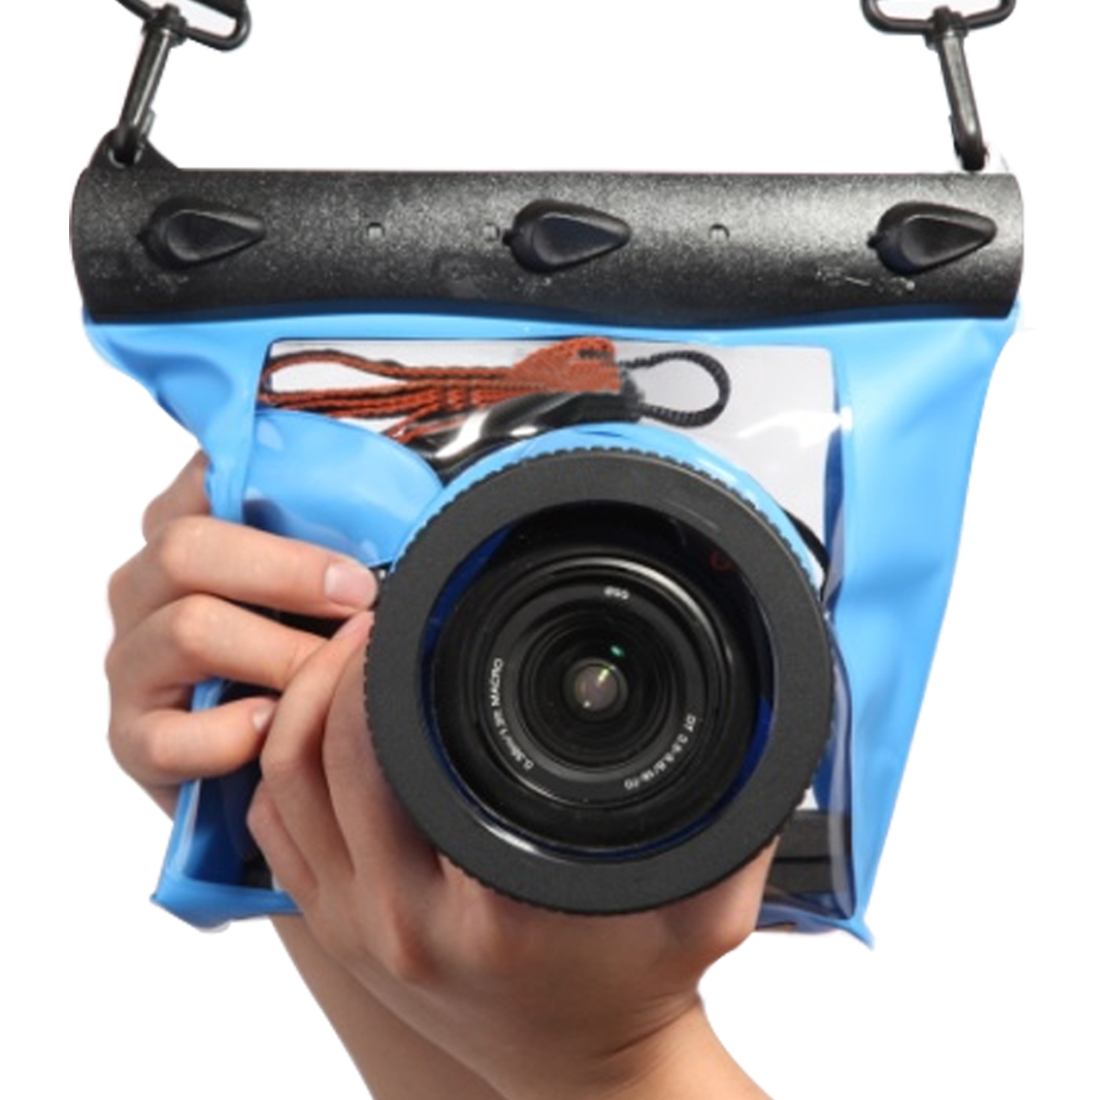 Centechia Underwater Diving Camera Housing Case Pouch Dry Bag Camera for Canon/Nikon/DSLR